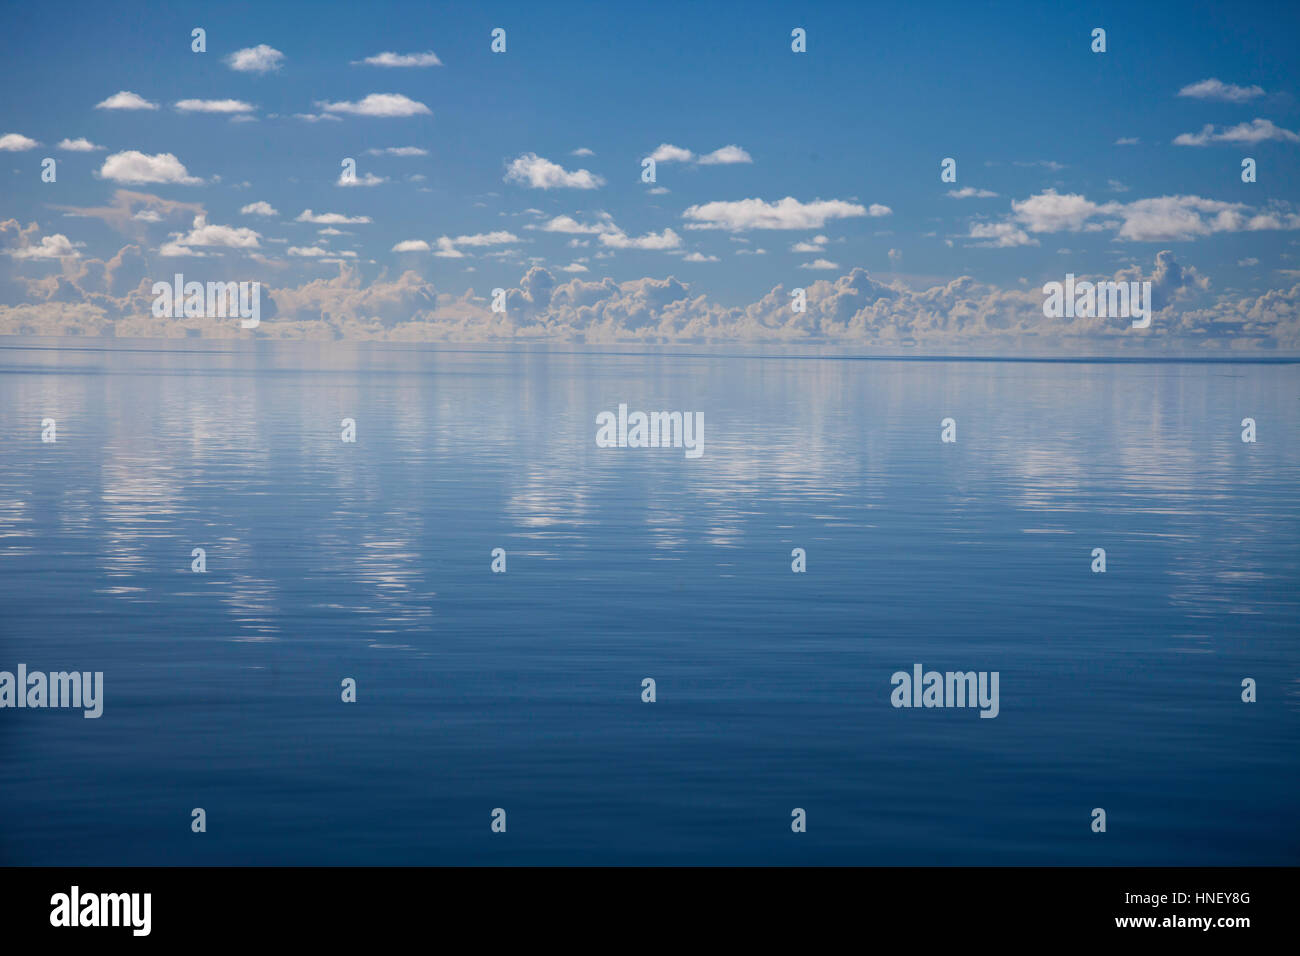 A glassy flat day on the ocean off the island of Yap, Micronesia. Stock Photo